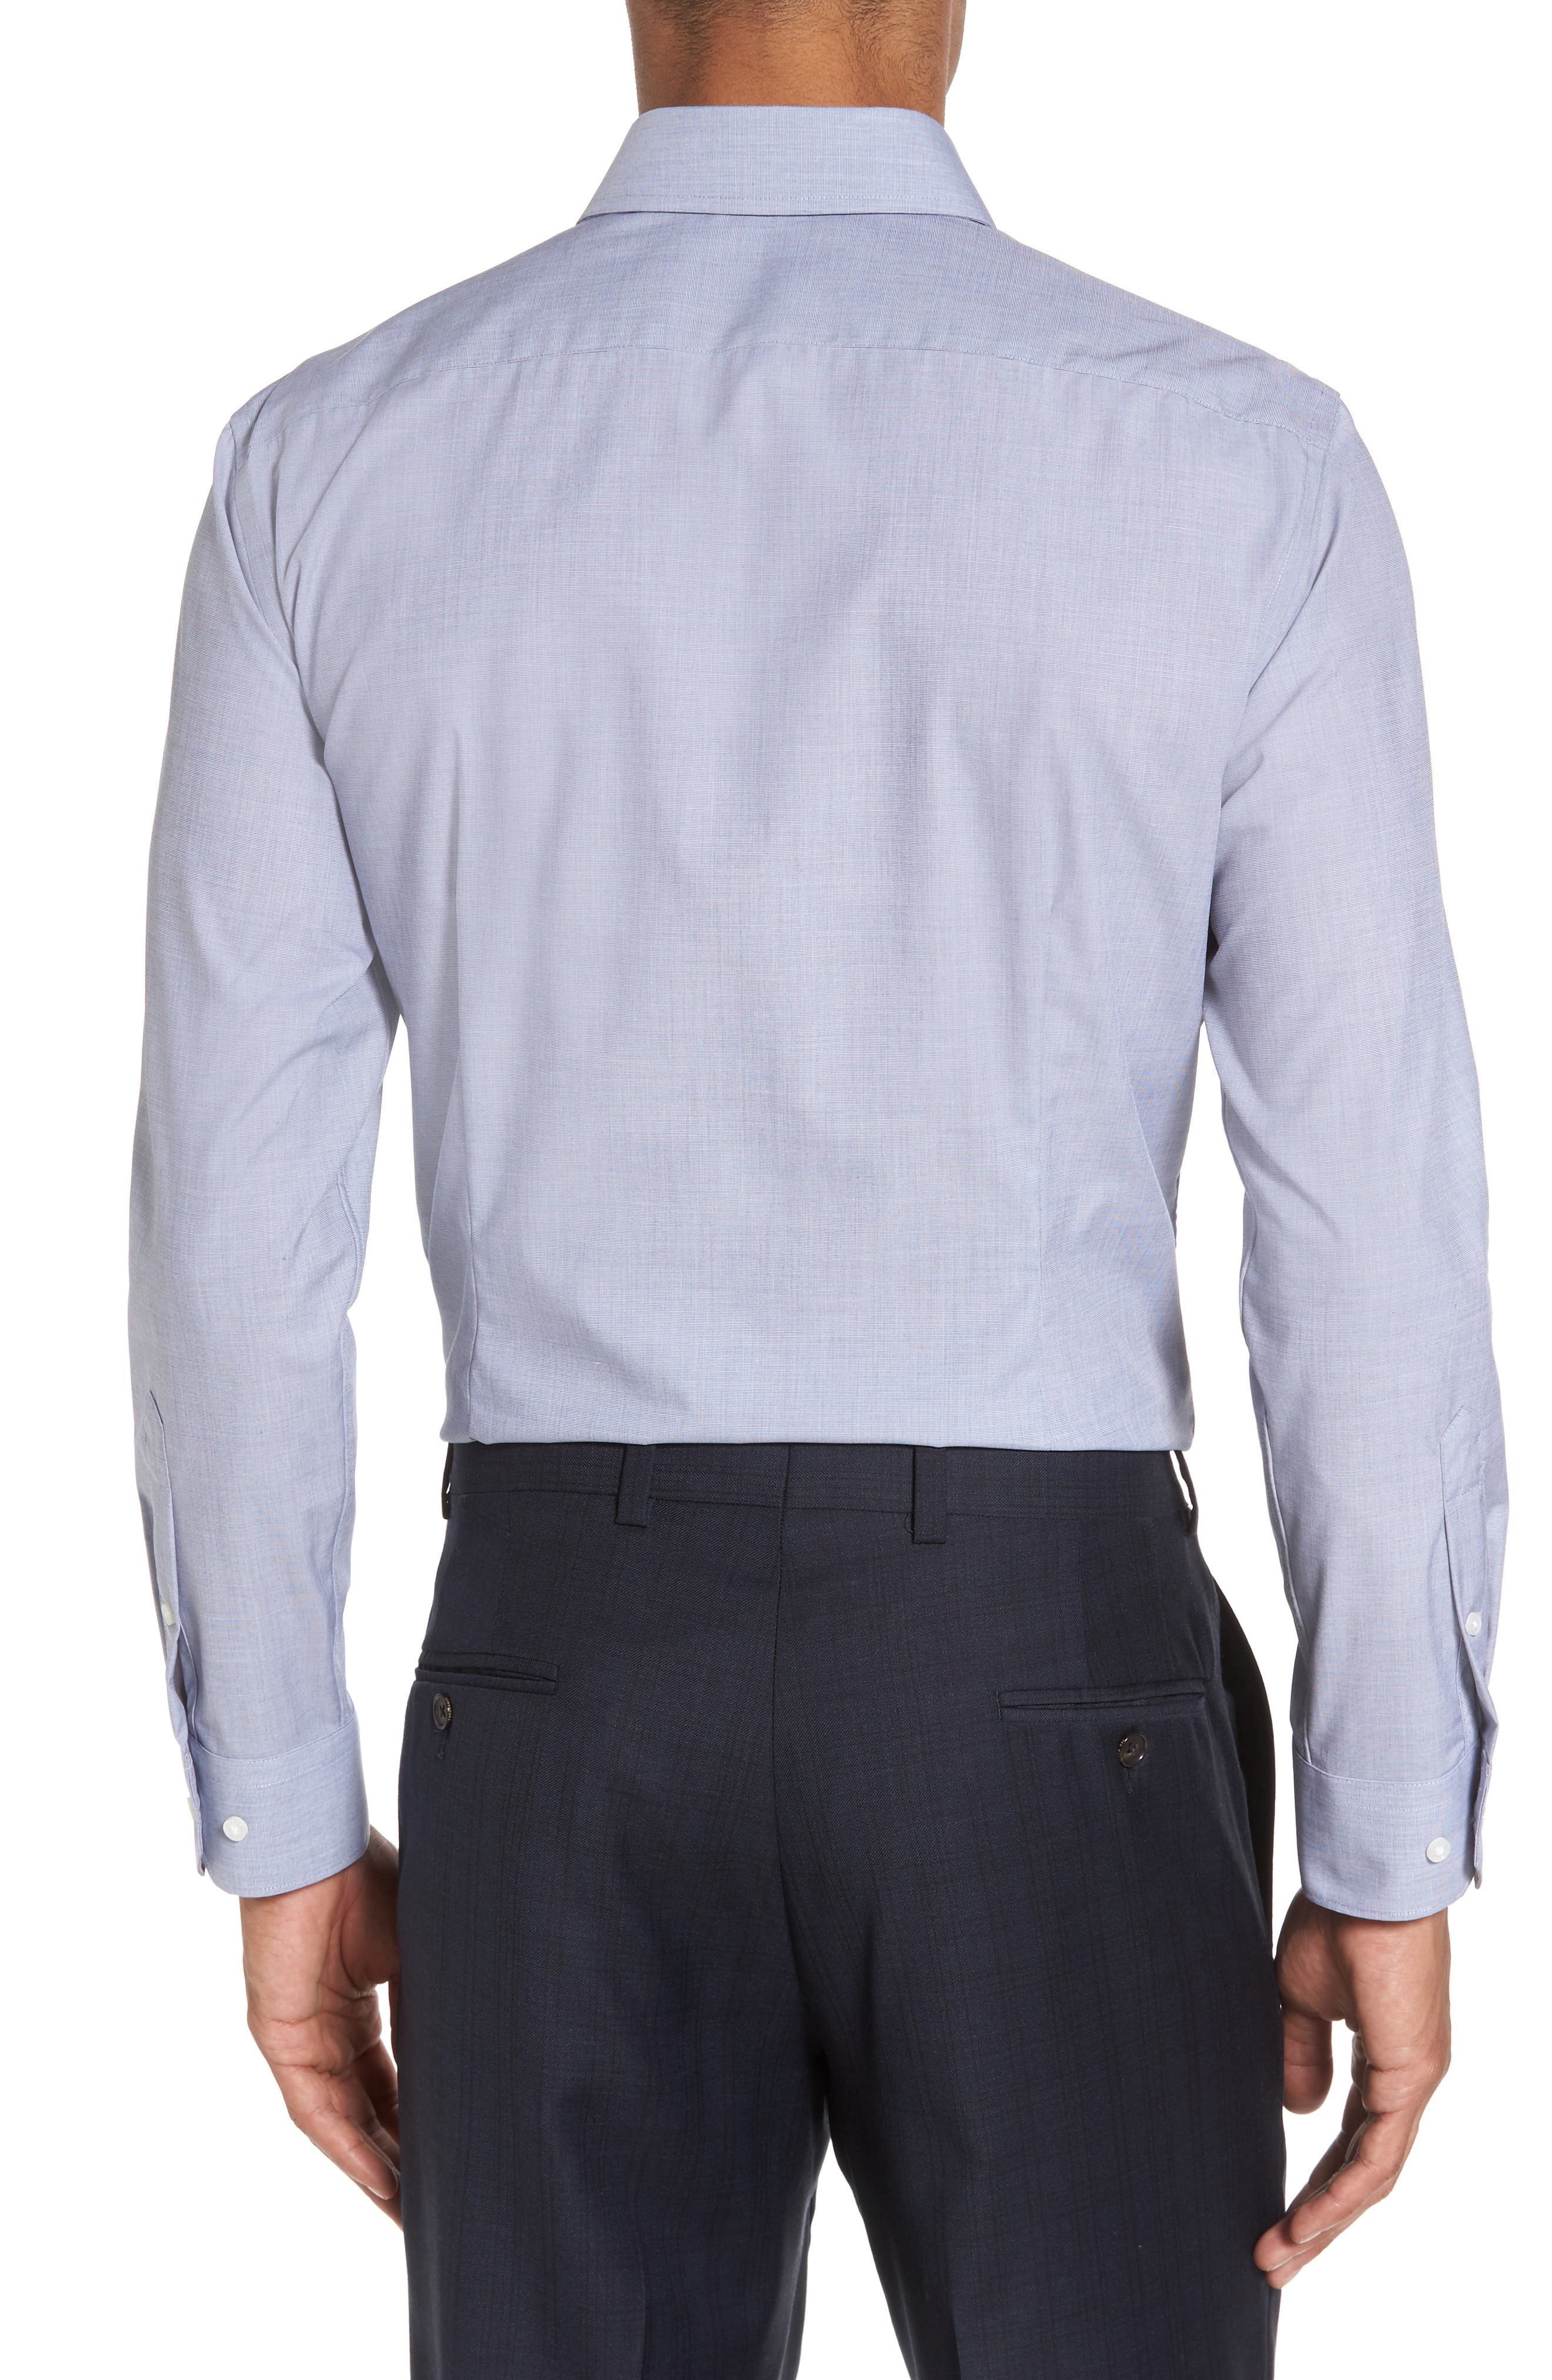 Extra Trim Fit Stretch No-Iron Dress Shirt,                             Alternate thumbnail 3, color,                             Navy Patriot